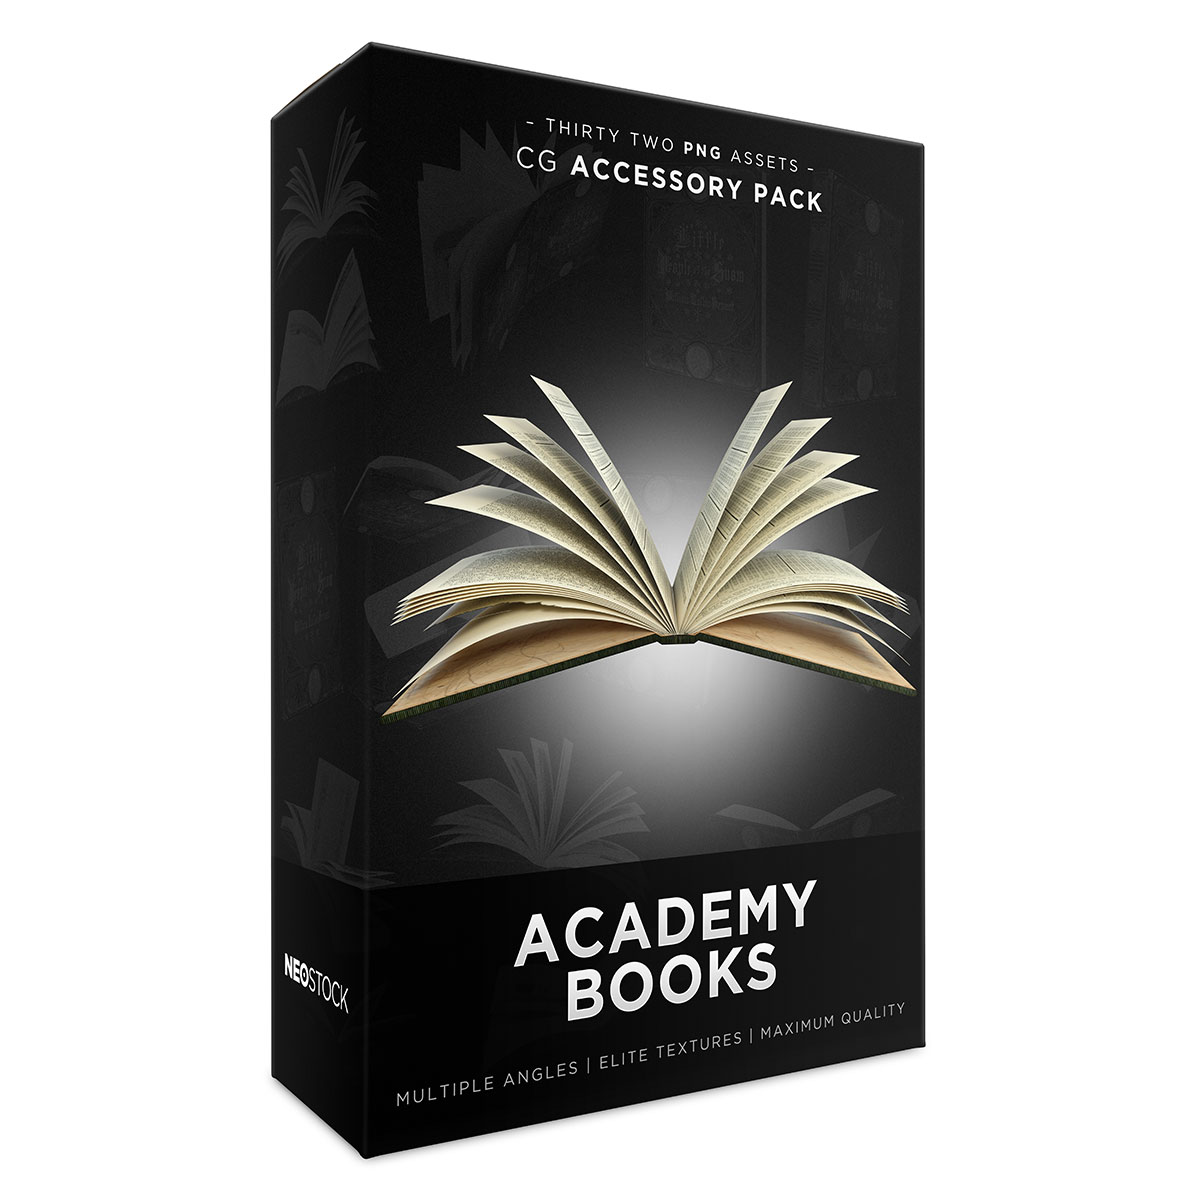 cg academy books product box sales